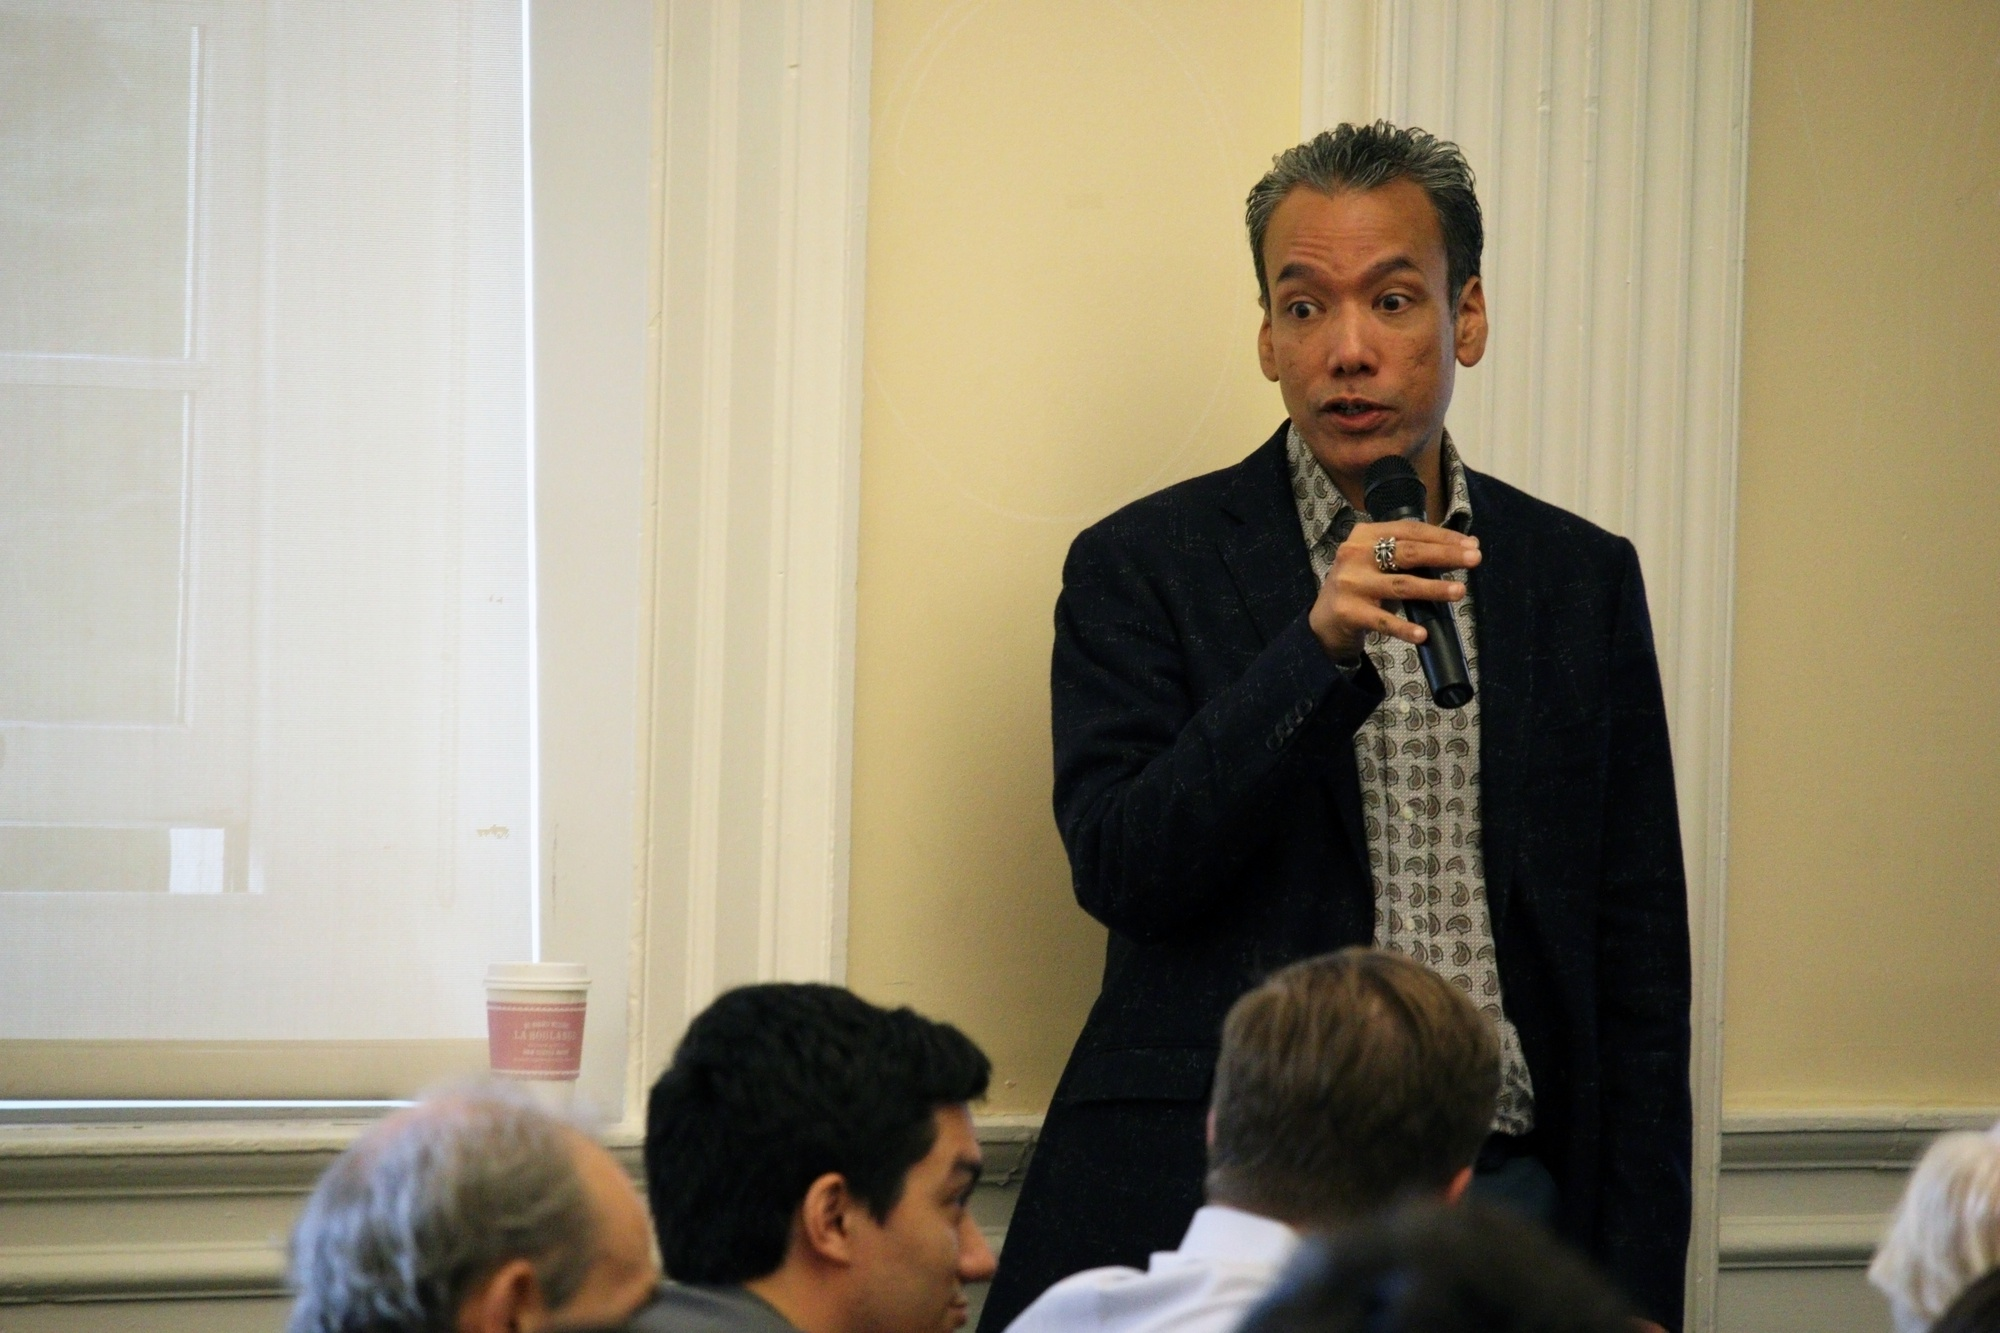 Professor Robert Lue prompts the audience for questions about HarvardX during a town hall meeting Thursday evening in Harvard Hall. Lue and fellow faculty members discussed courses, research, and objectives of HarvardX going forward.